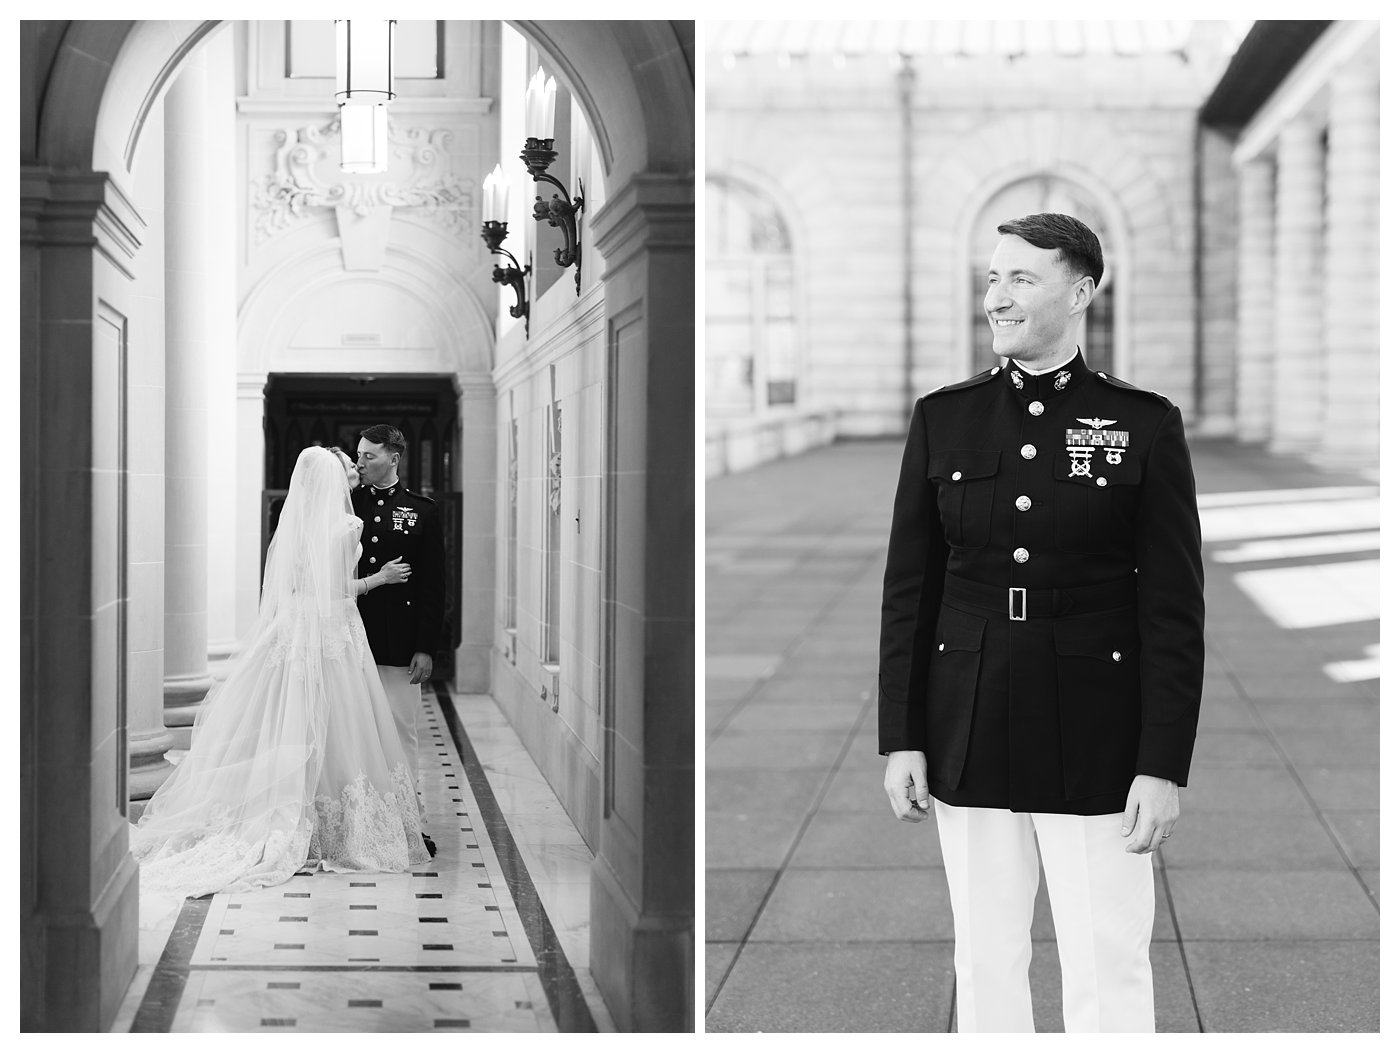 Bancroft Hall Wedding Photography by Amanda and Grady Photography